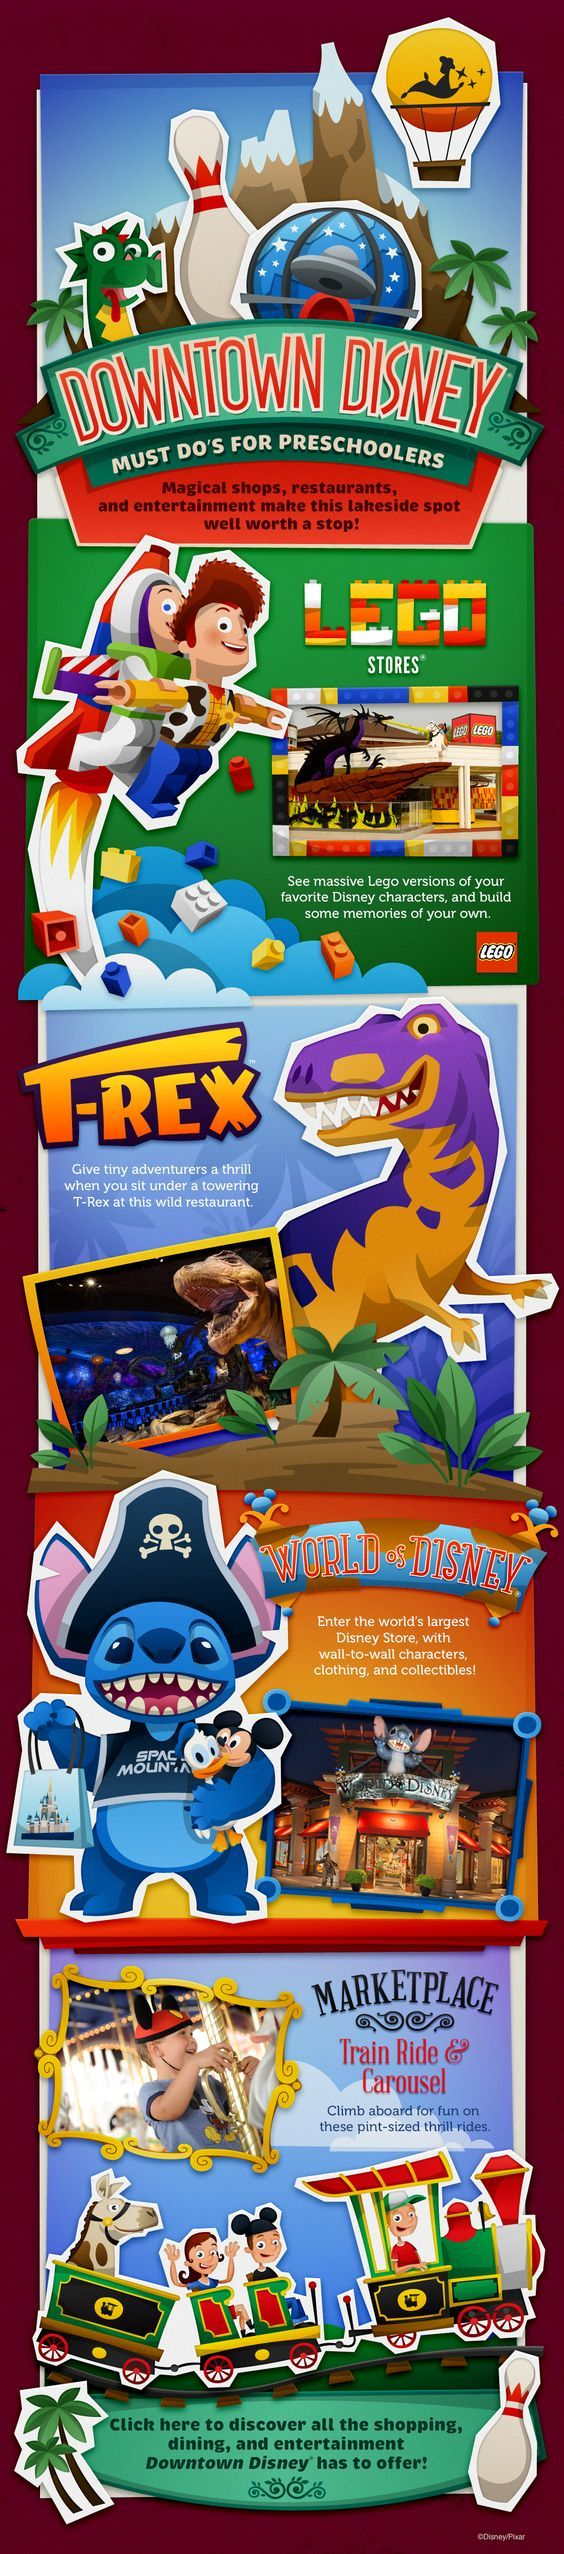 Downtown Disney Must Do's for Preschoolers! LEGO, T-REX, World of Disney…